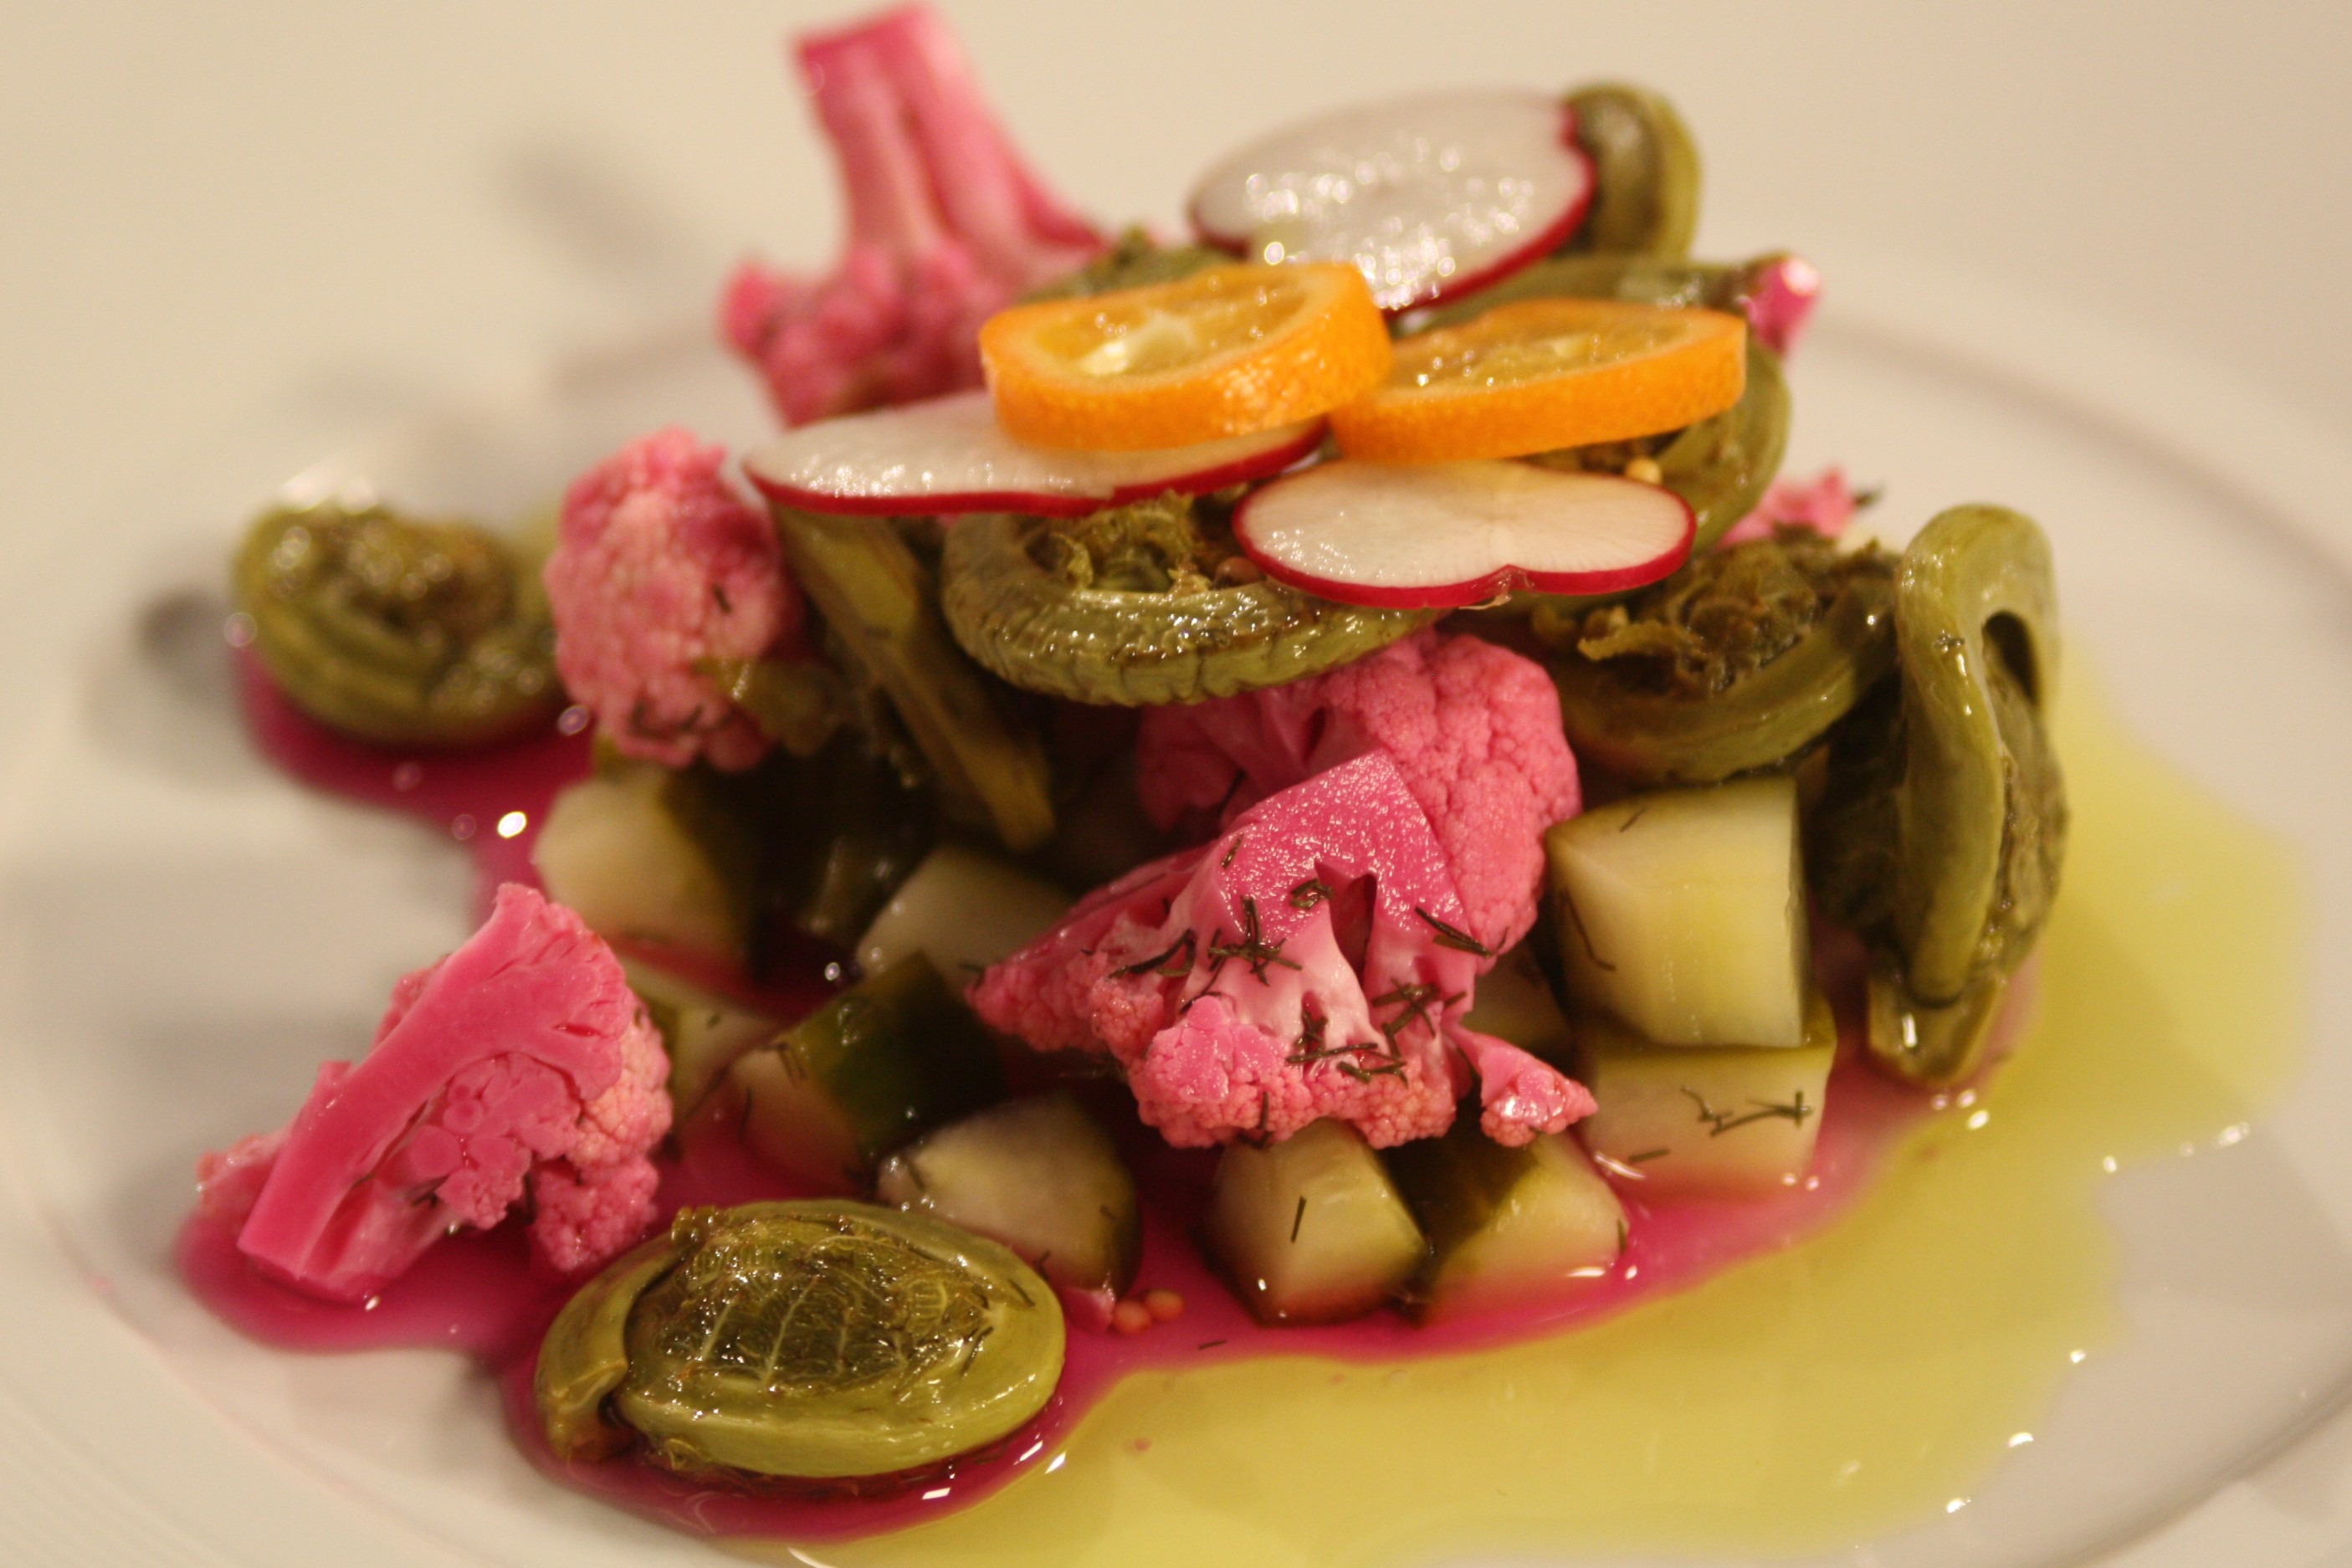 Fiddlehead & Pickled Vegetable Salad with Citrus Oil